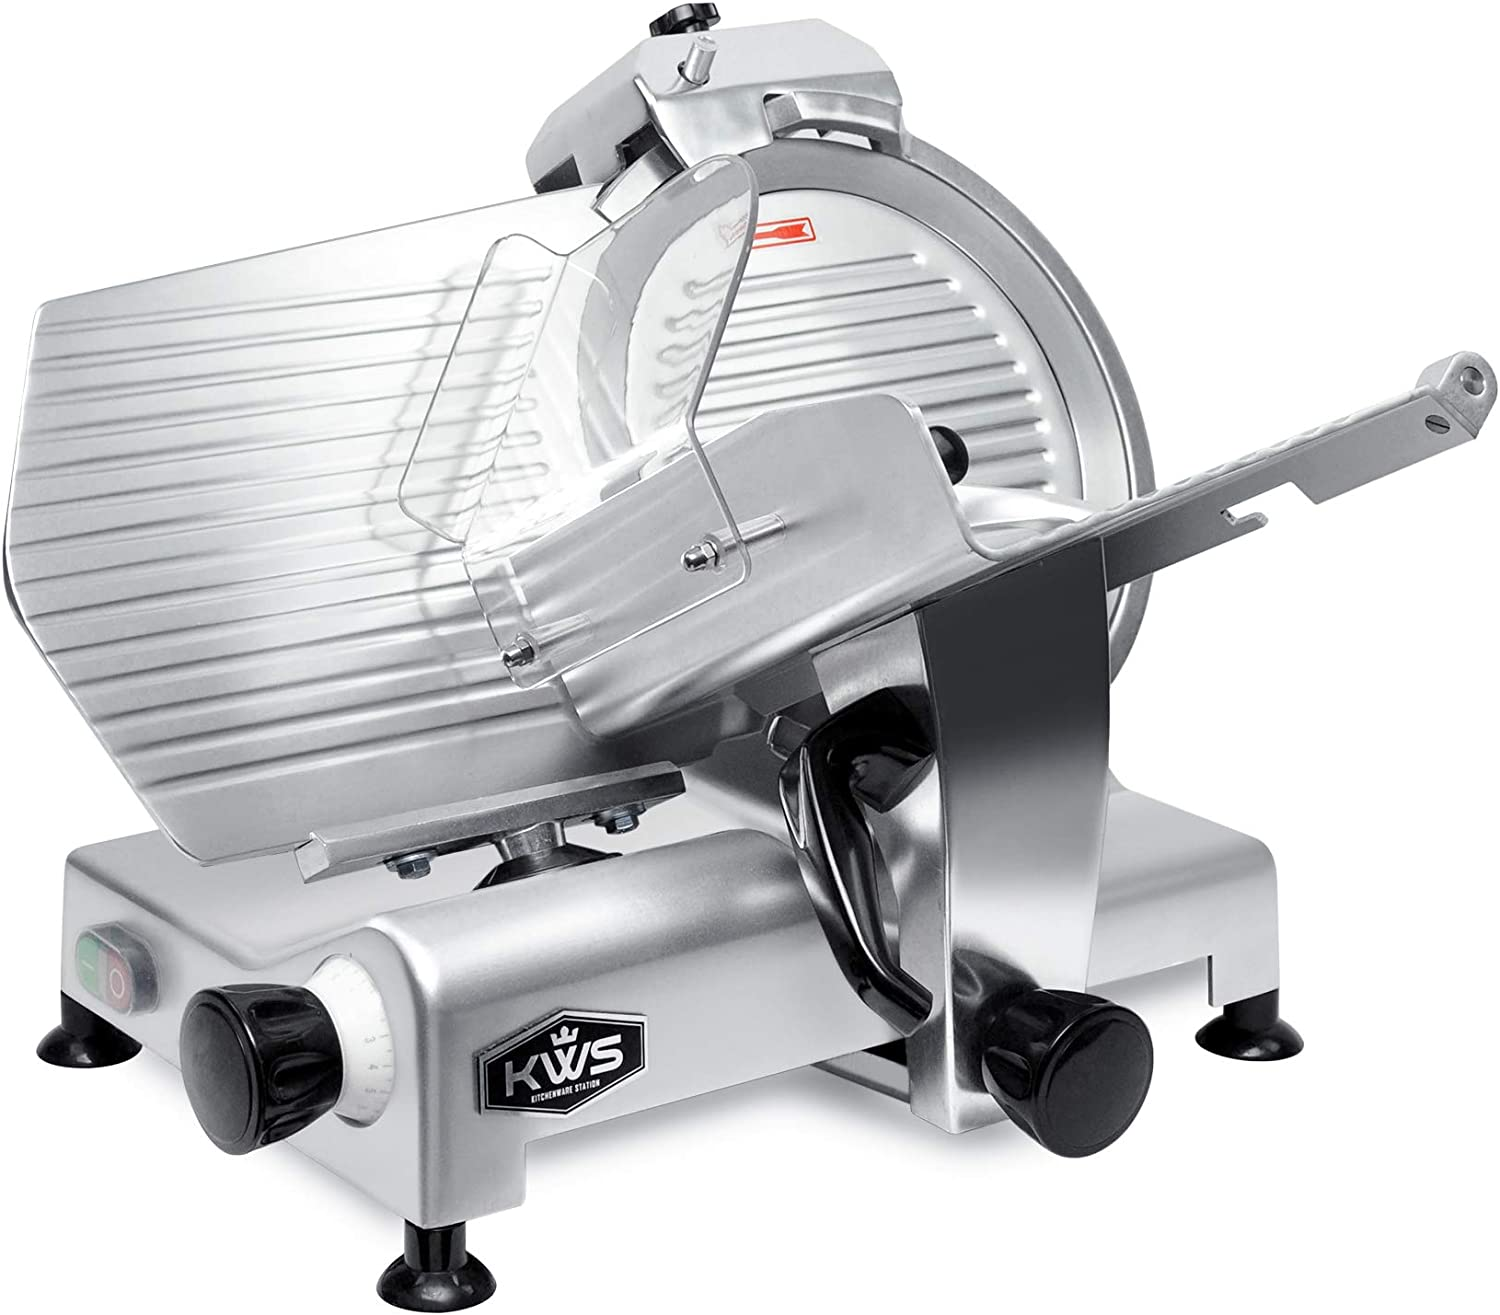 KWS MS-12NS Premium Fashion Commercial 420w Electric Meat 12-Inch Recommended Slicer